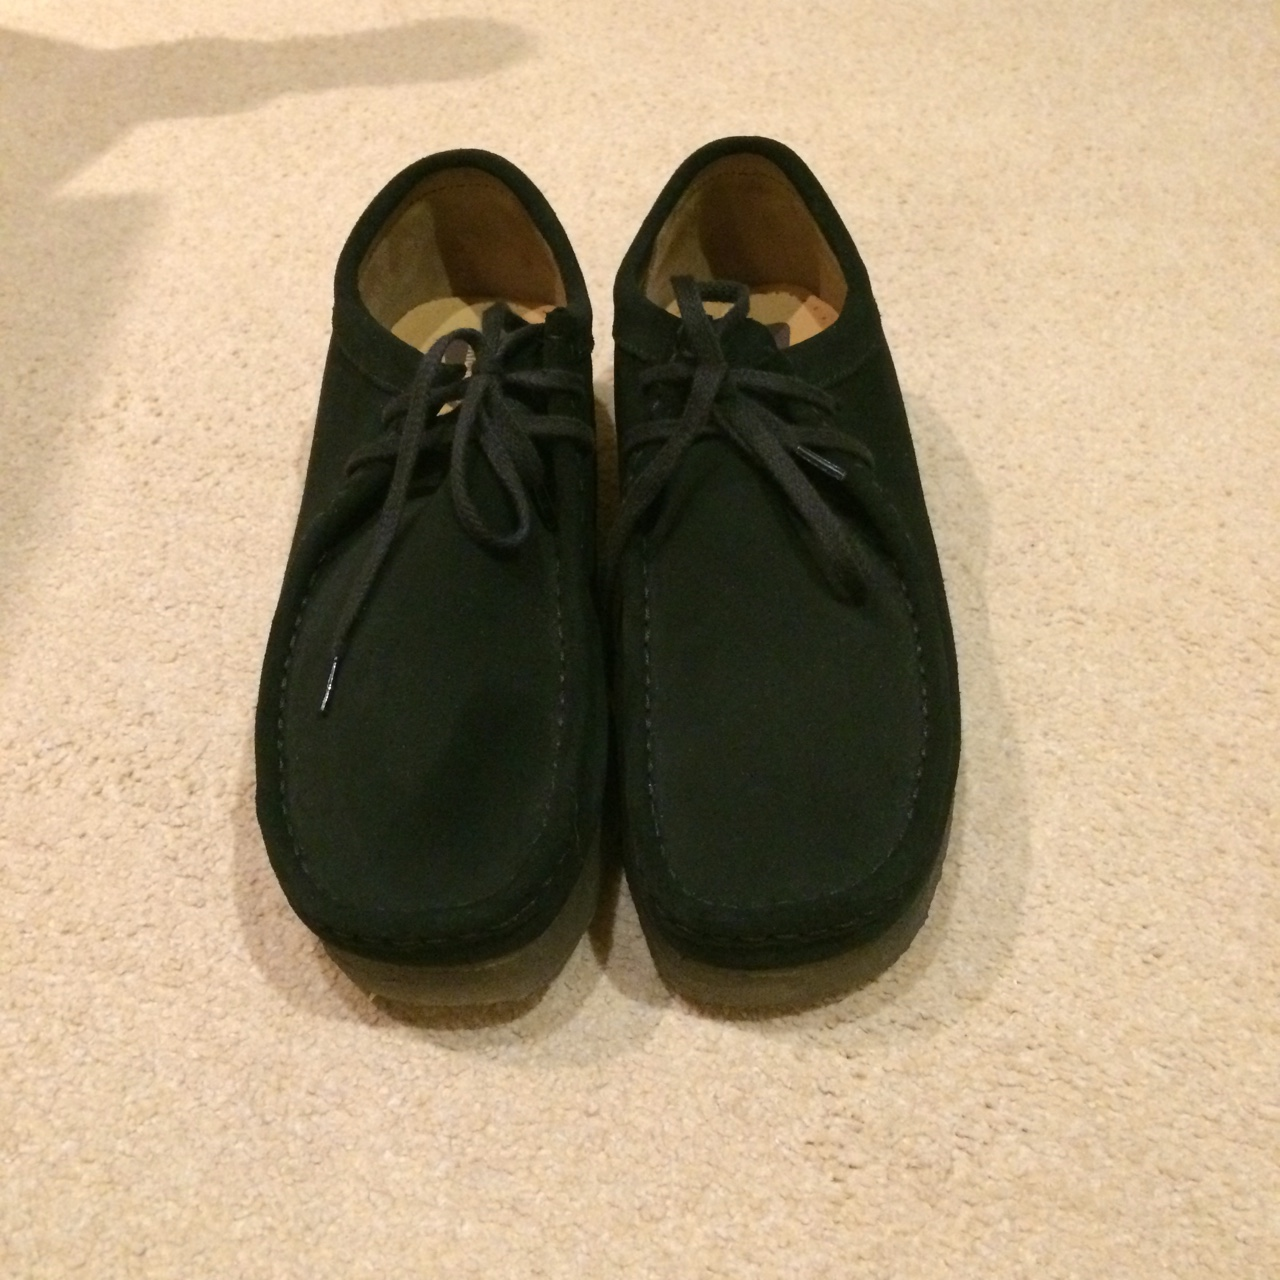 Clarks wallabees, black with gum sole